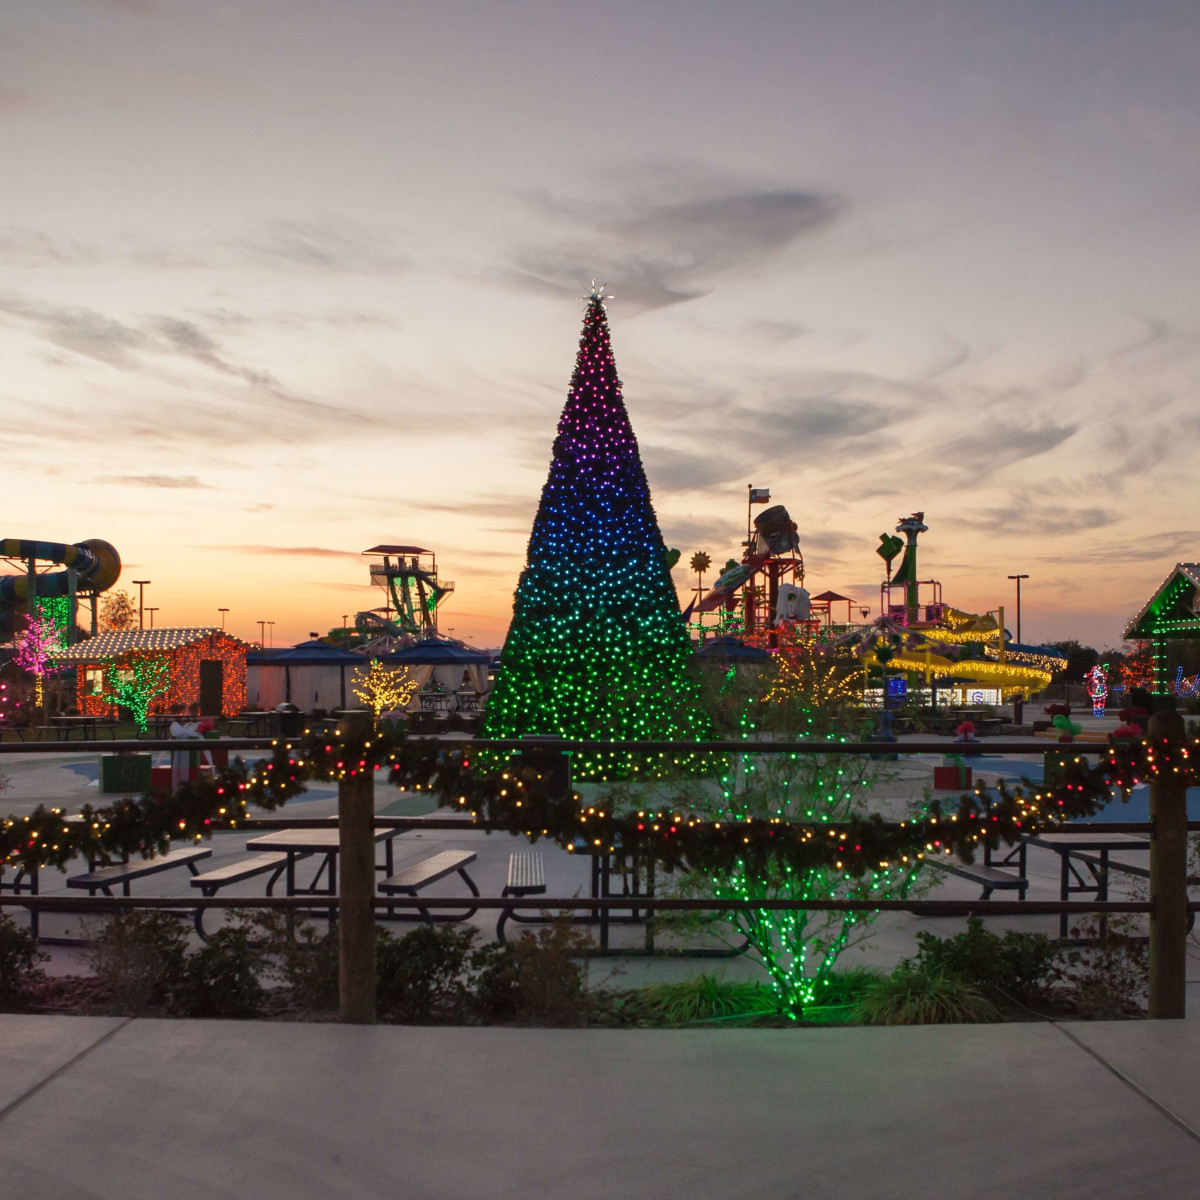 Texas Typhoon Winterfest Christmas tree at sunset